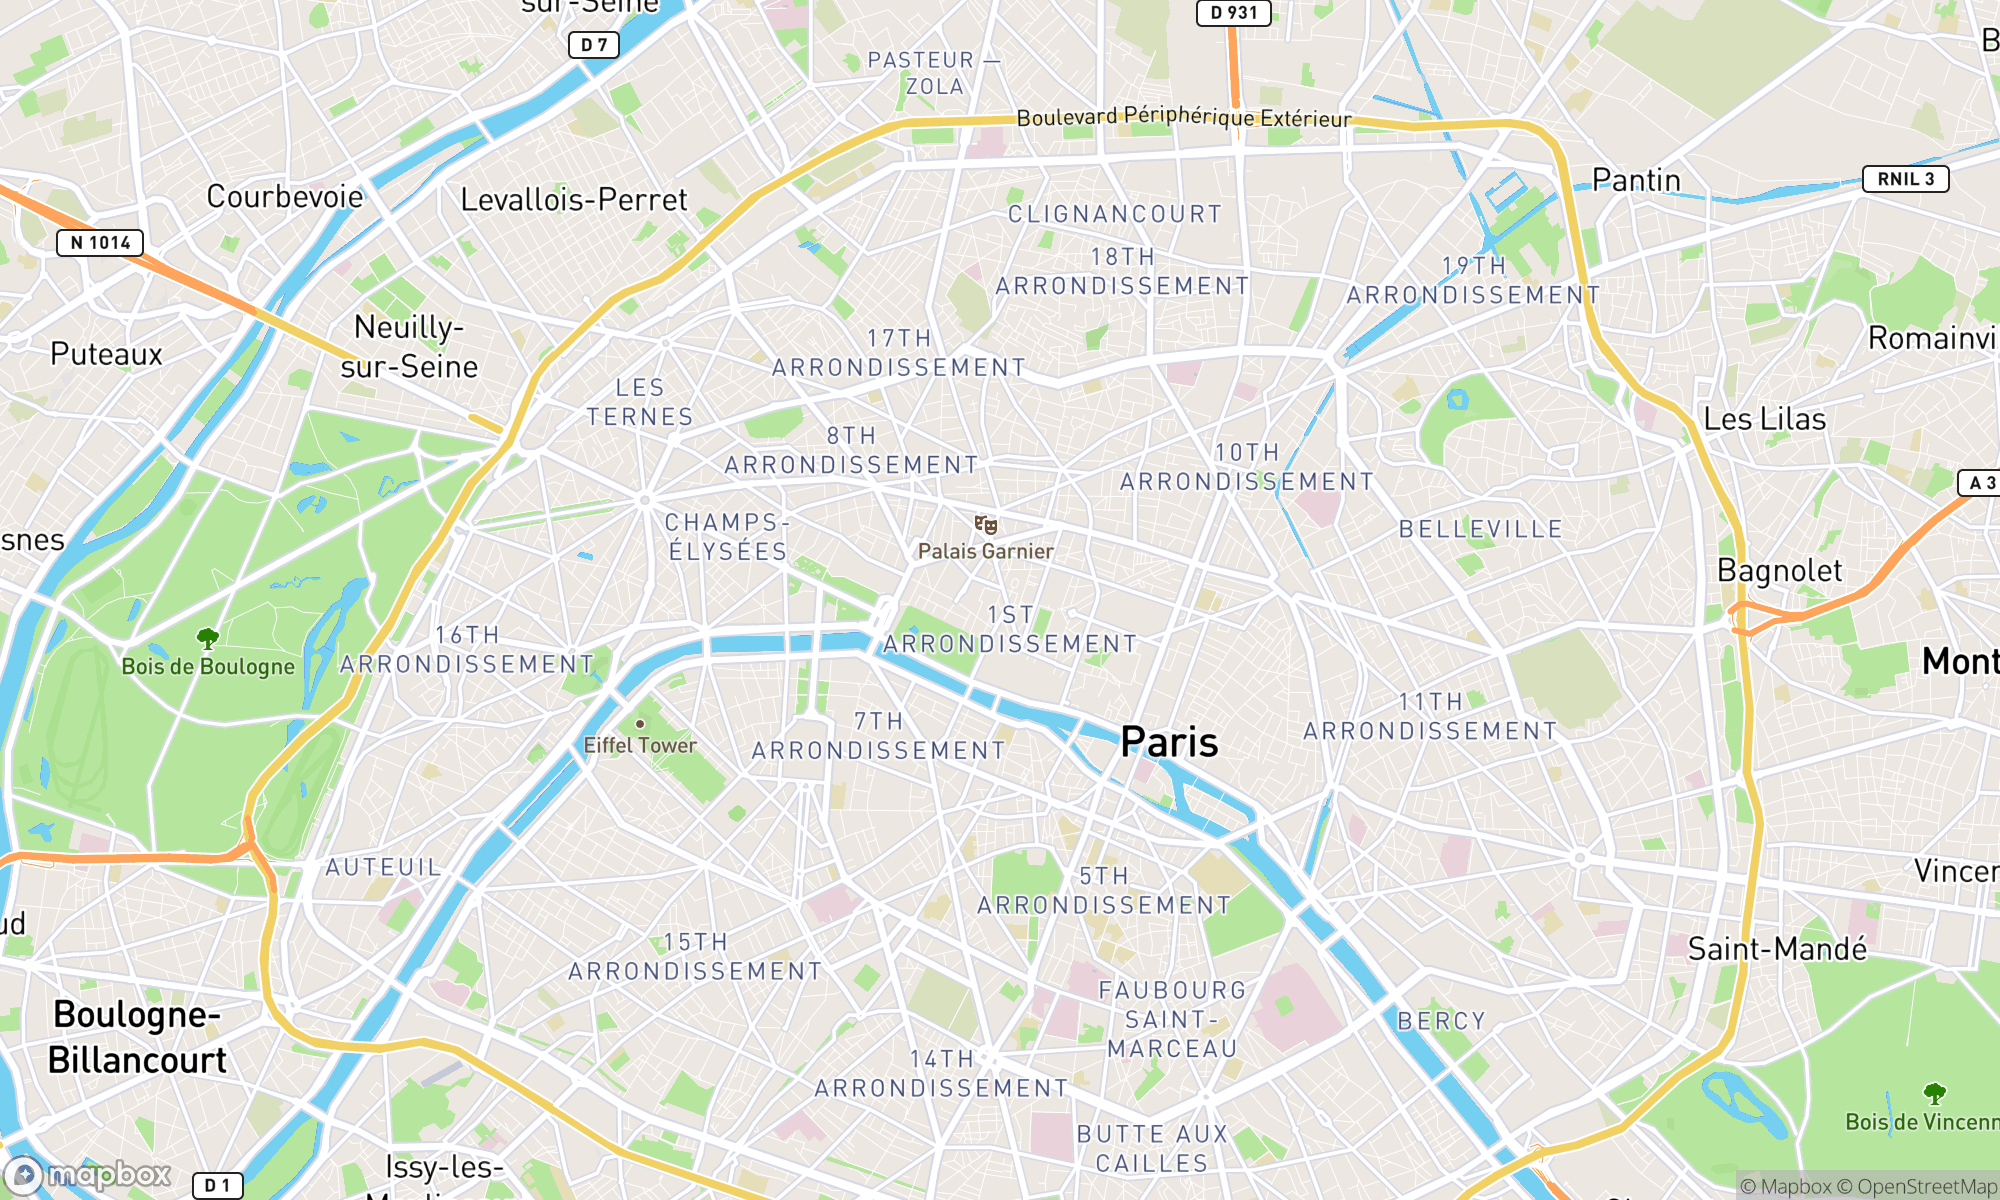 Map of Paris area